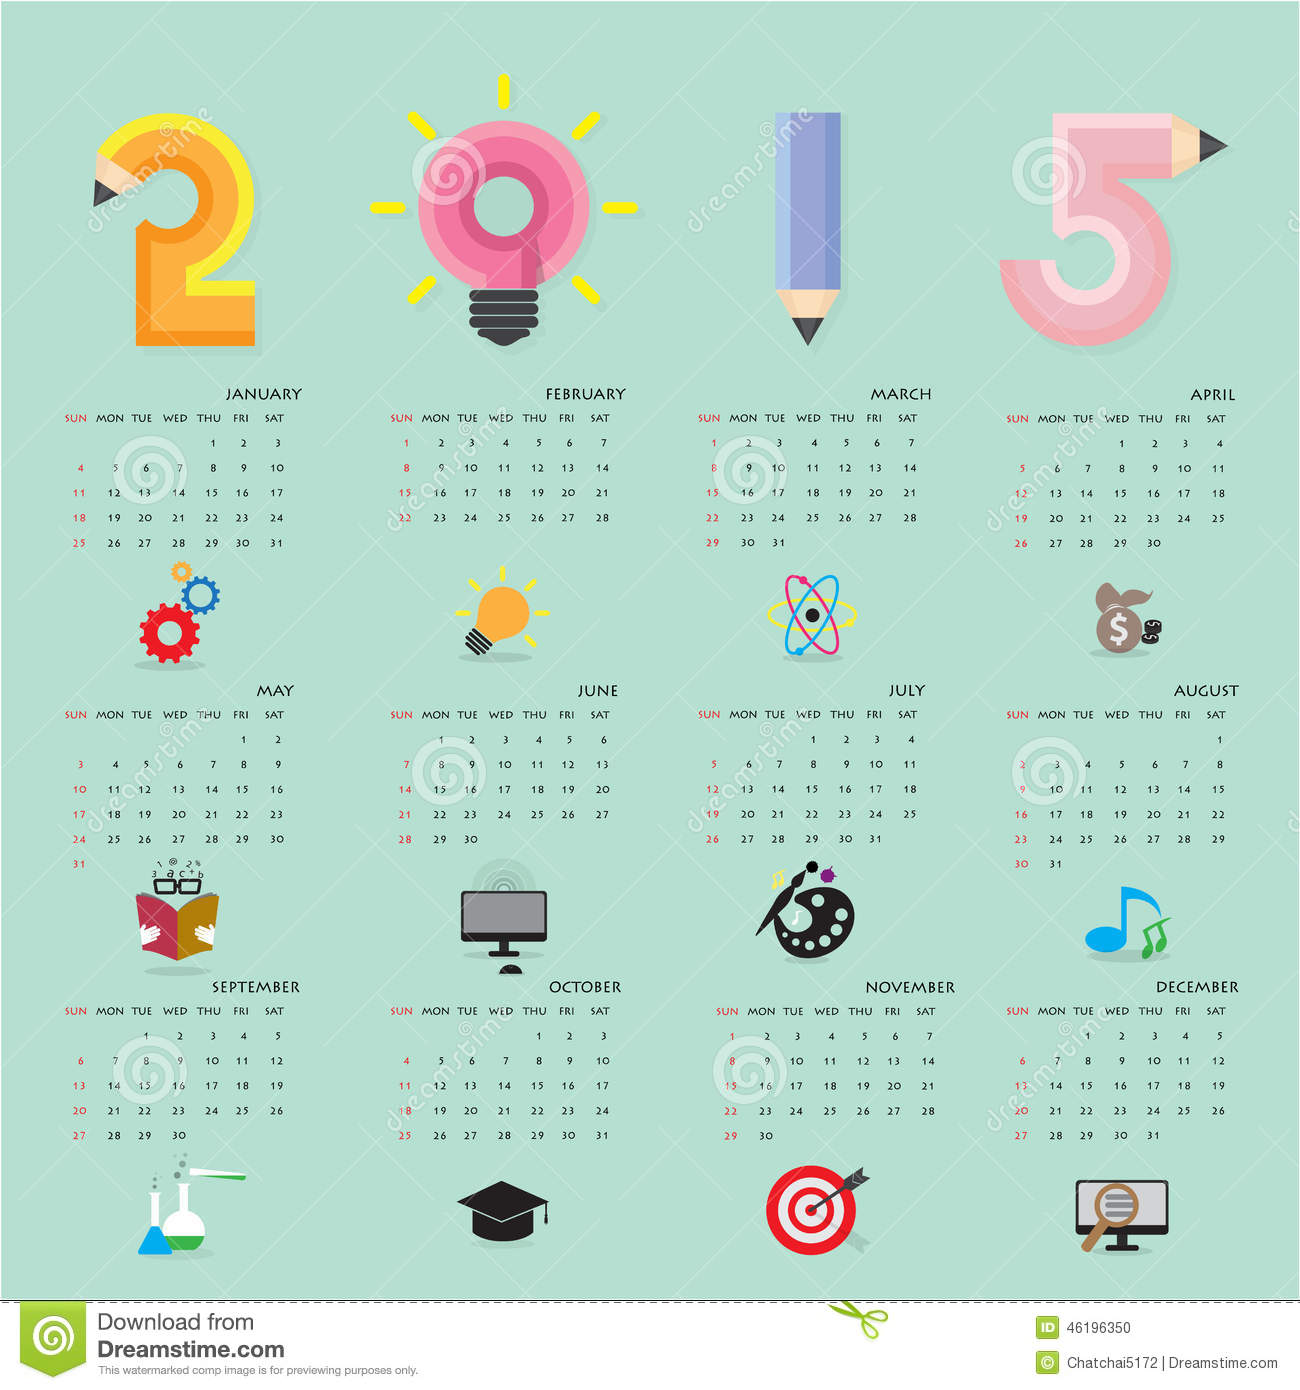 Illustration Calendar Design : Creative calendar design template with business or